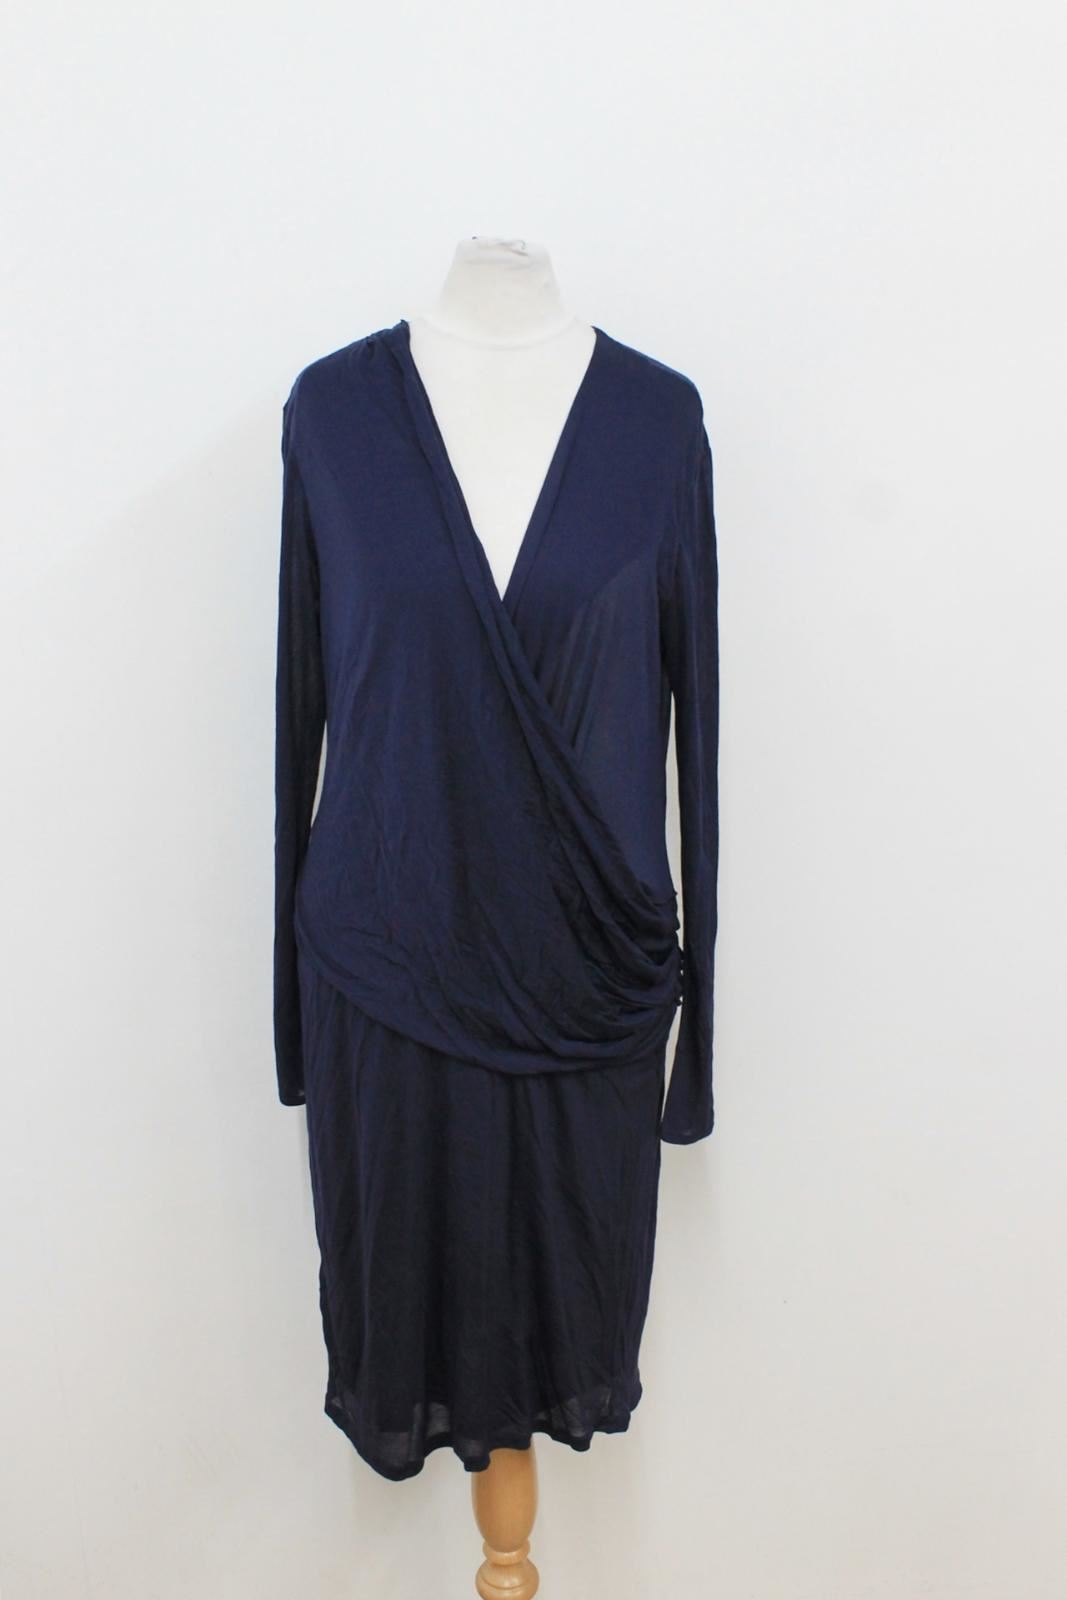 Blue Size Navy Farhi Sleeved Dress Uk10 Ladies neckline Nicole V Long Shift gvtZSvwn